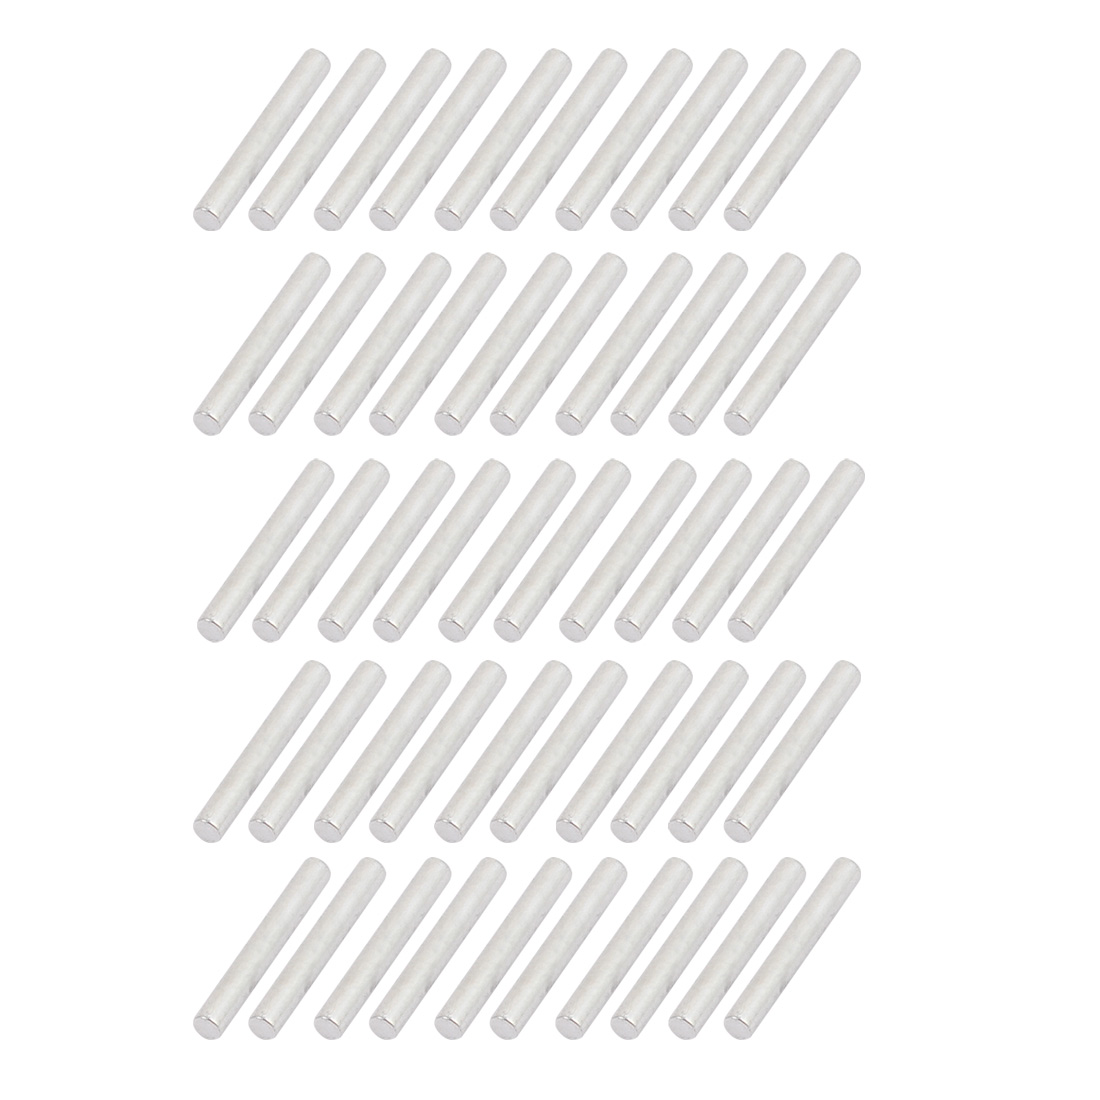 50Pcs Round Shaft Solid Steel Rods Axles 2mm x 15mm Silver Tone